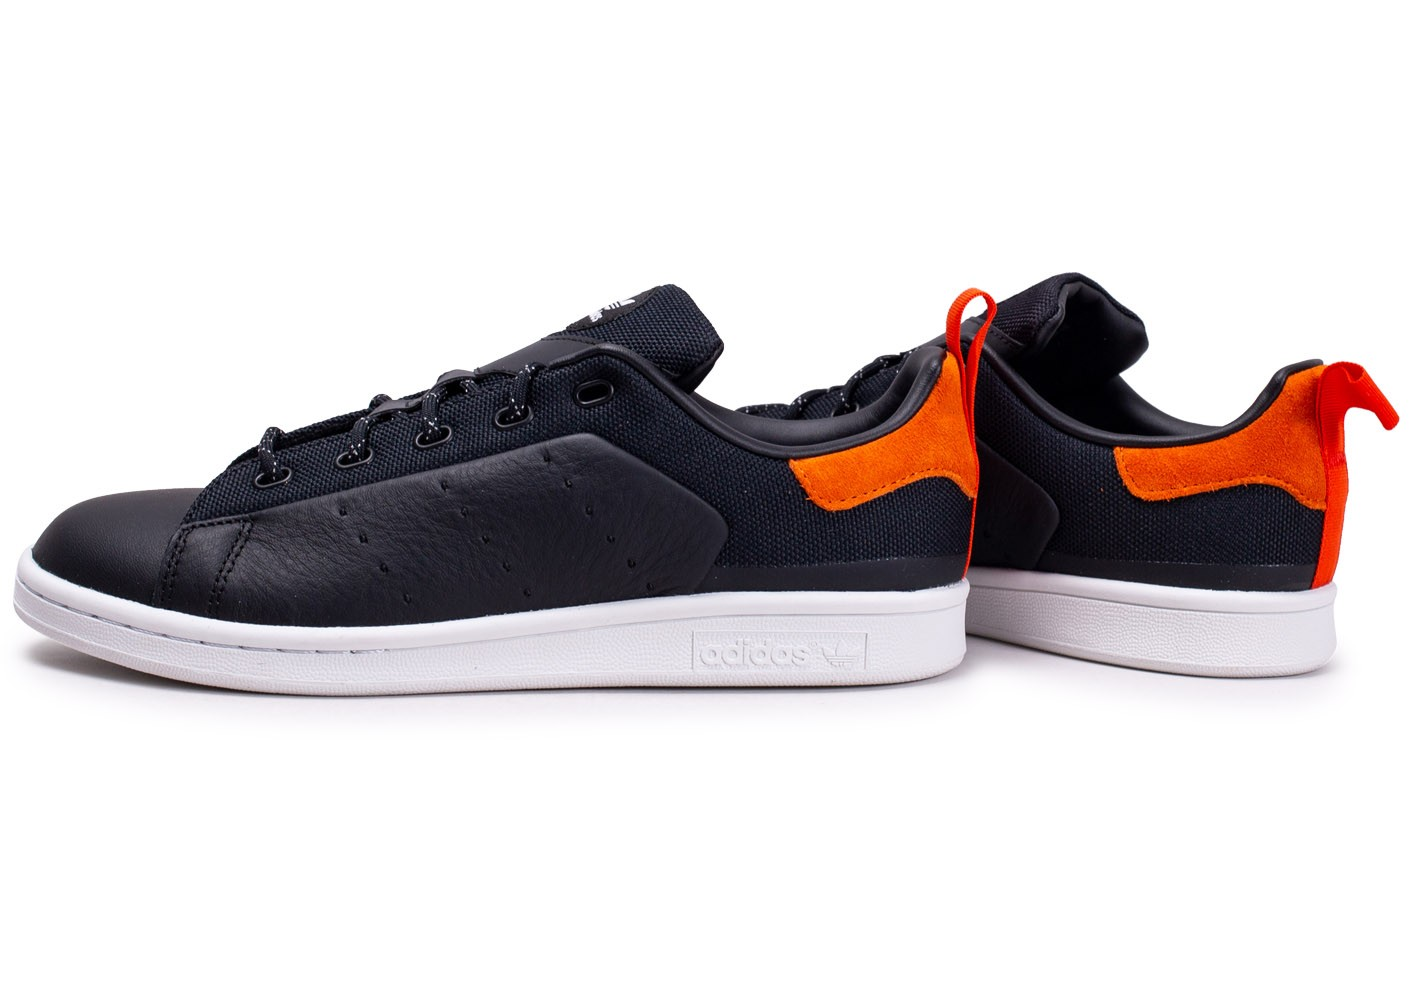 adidas Stan Smith noire et orange - Chaussures Baskets homme ...